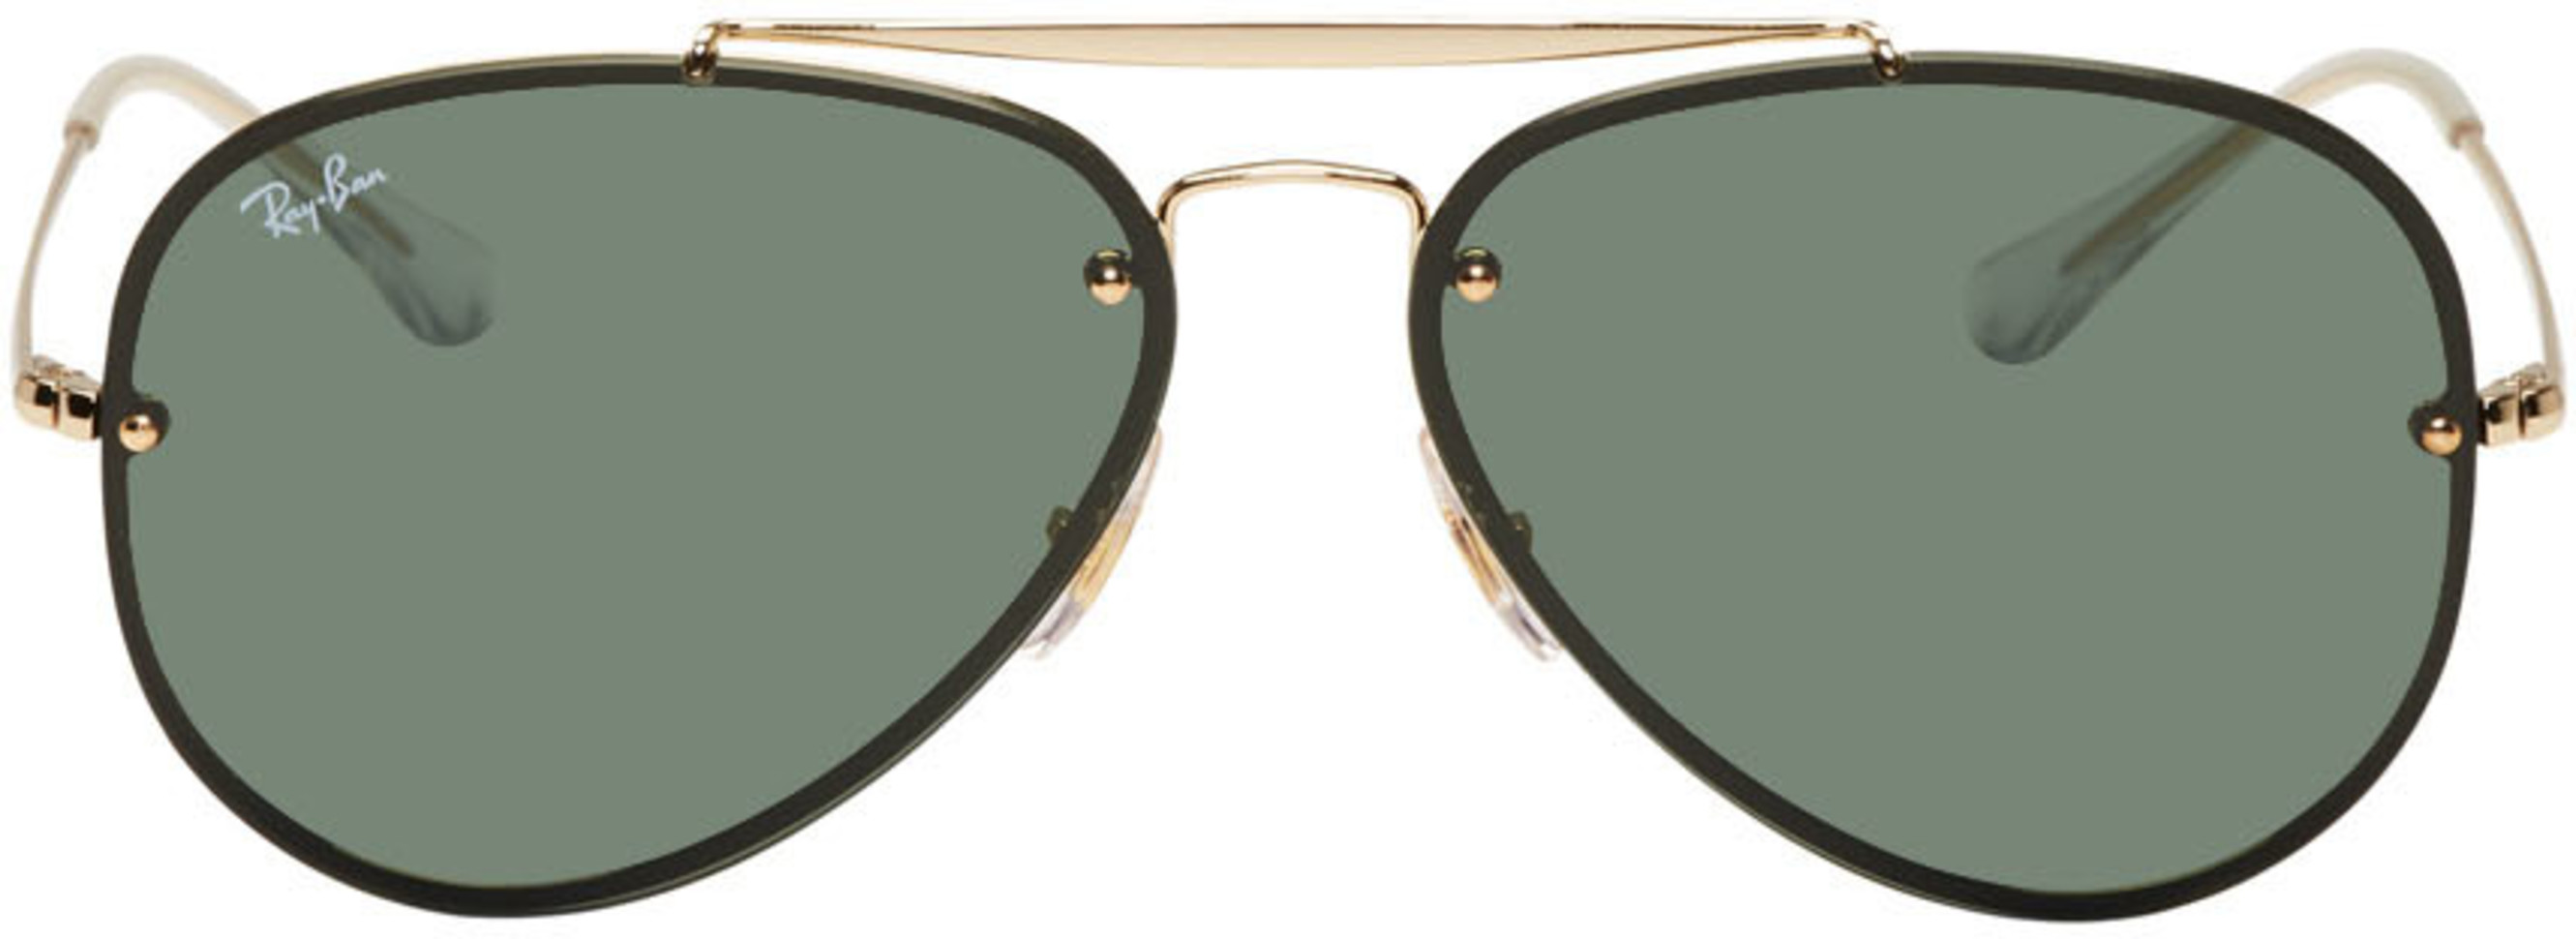 c84a6696420ad Ray-ban for Men SS19 Collection